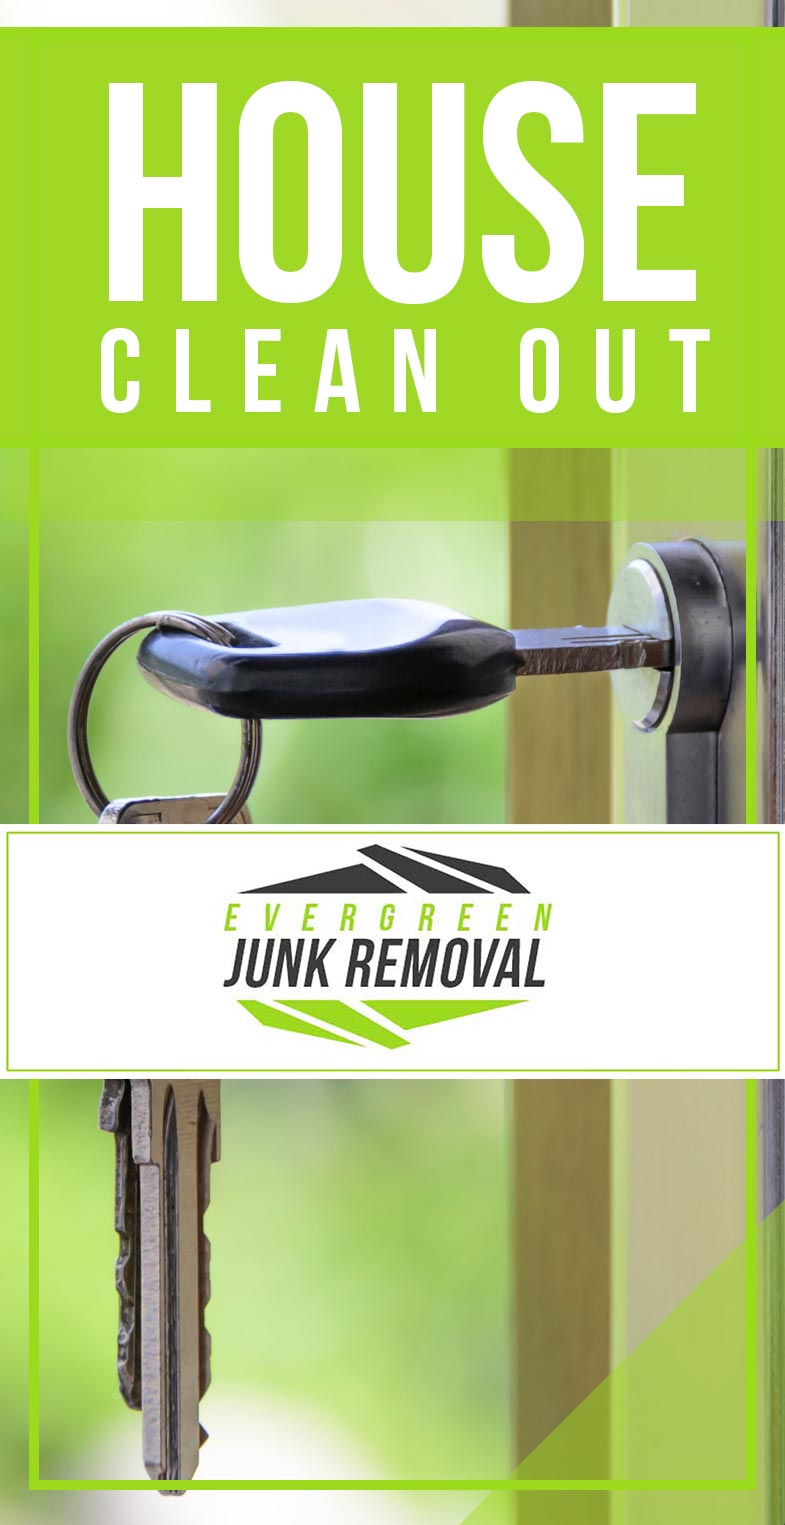 Junk Removal Hialeah House Clean Out